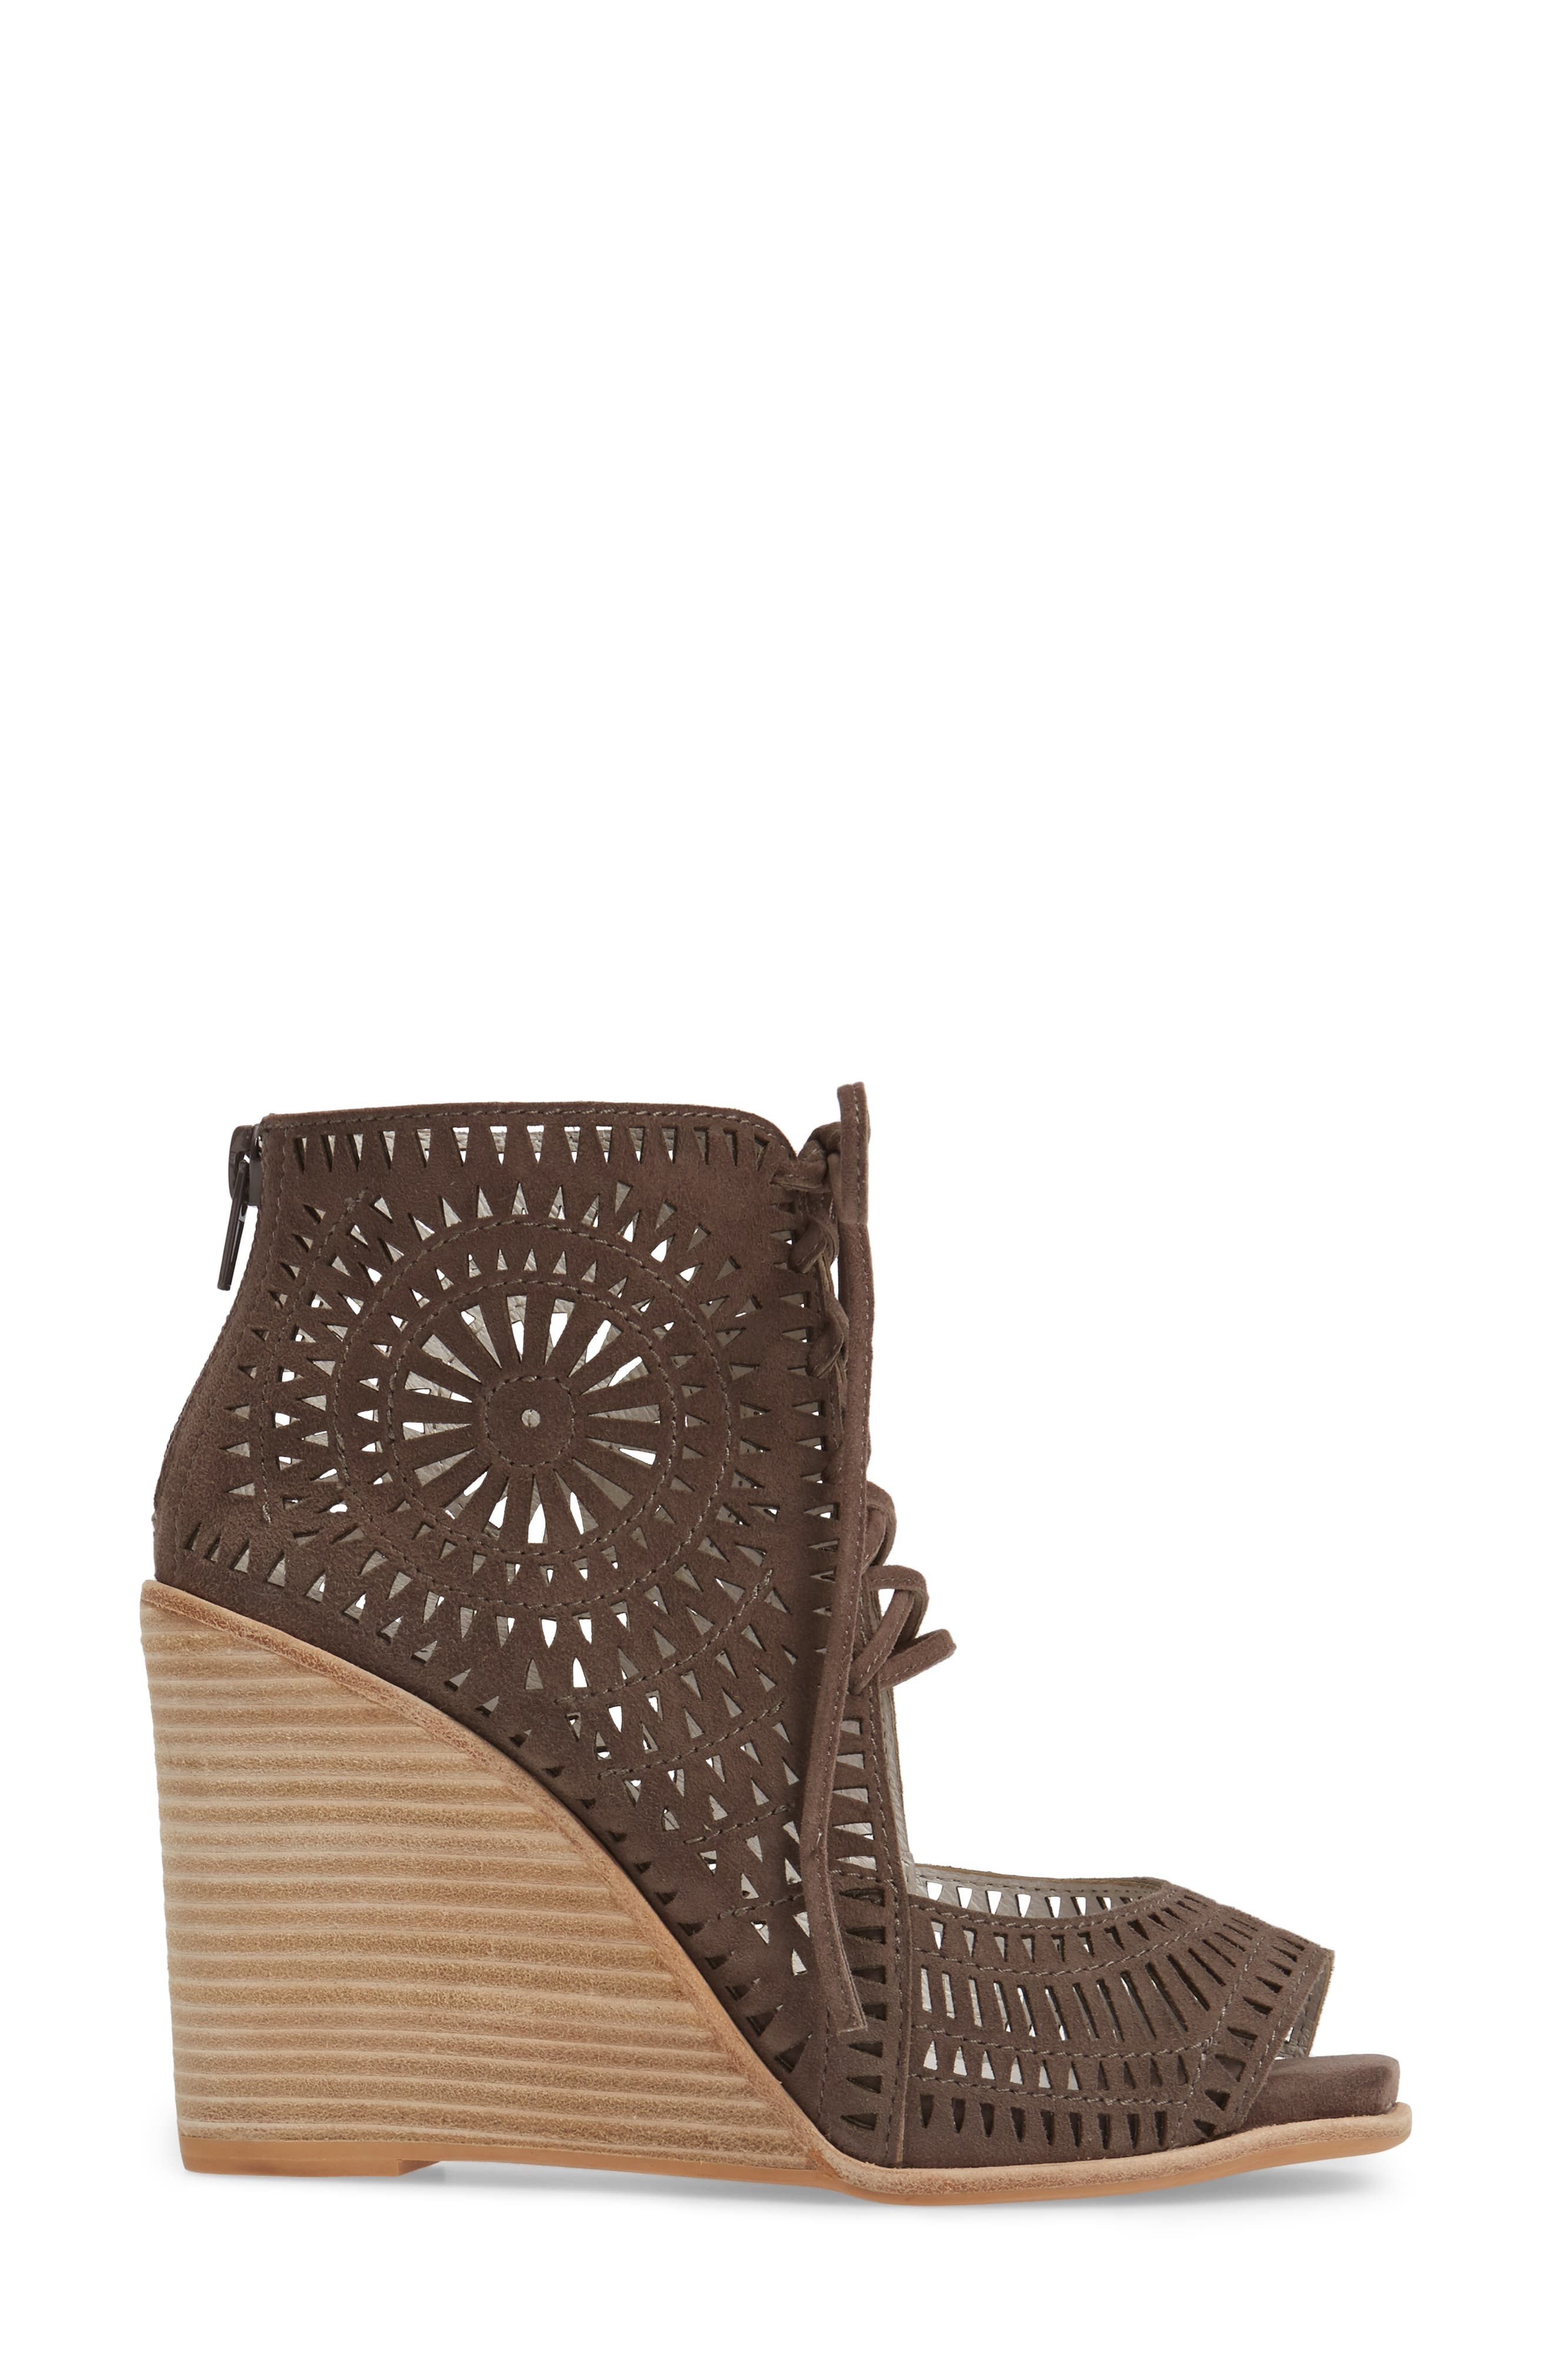 JEFFREY CAMPBELL, Rayos Perforated Wedge Sandal, Alternate thumbnail 3, color, 200